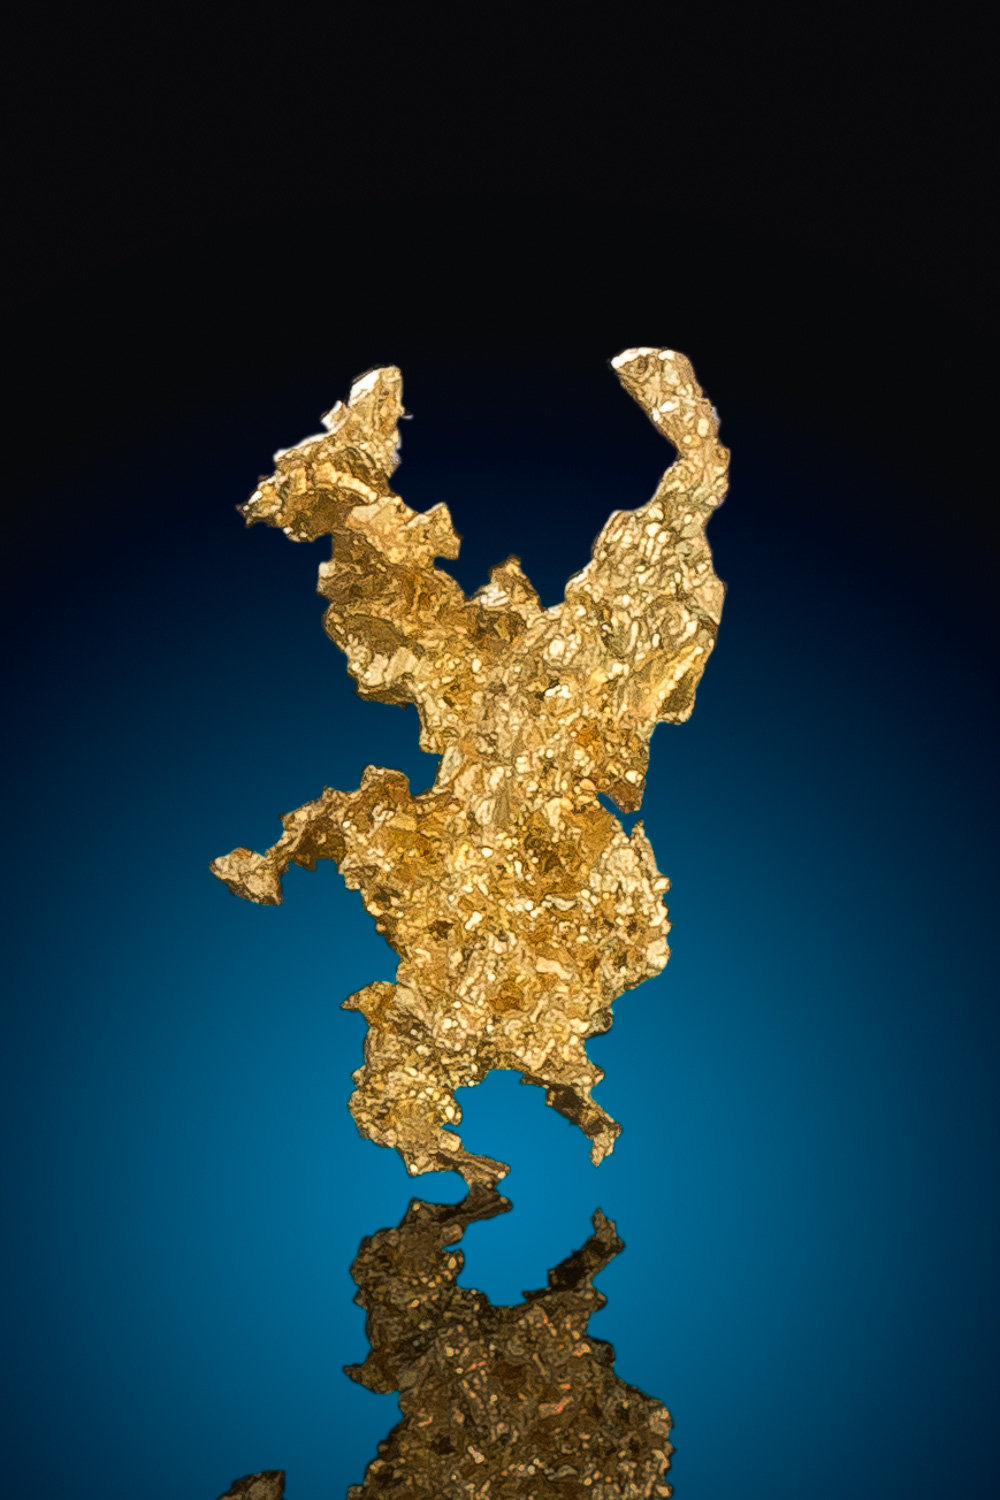 Intricate Crystalline Gold Nugget from the Eagles Nest Gold Mine